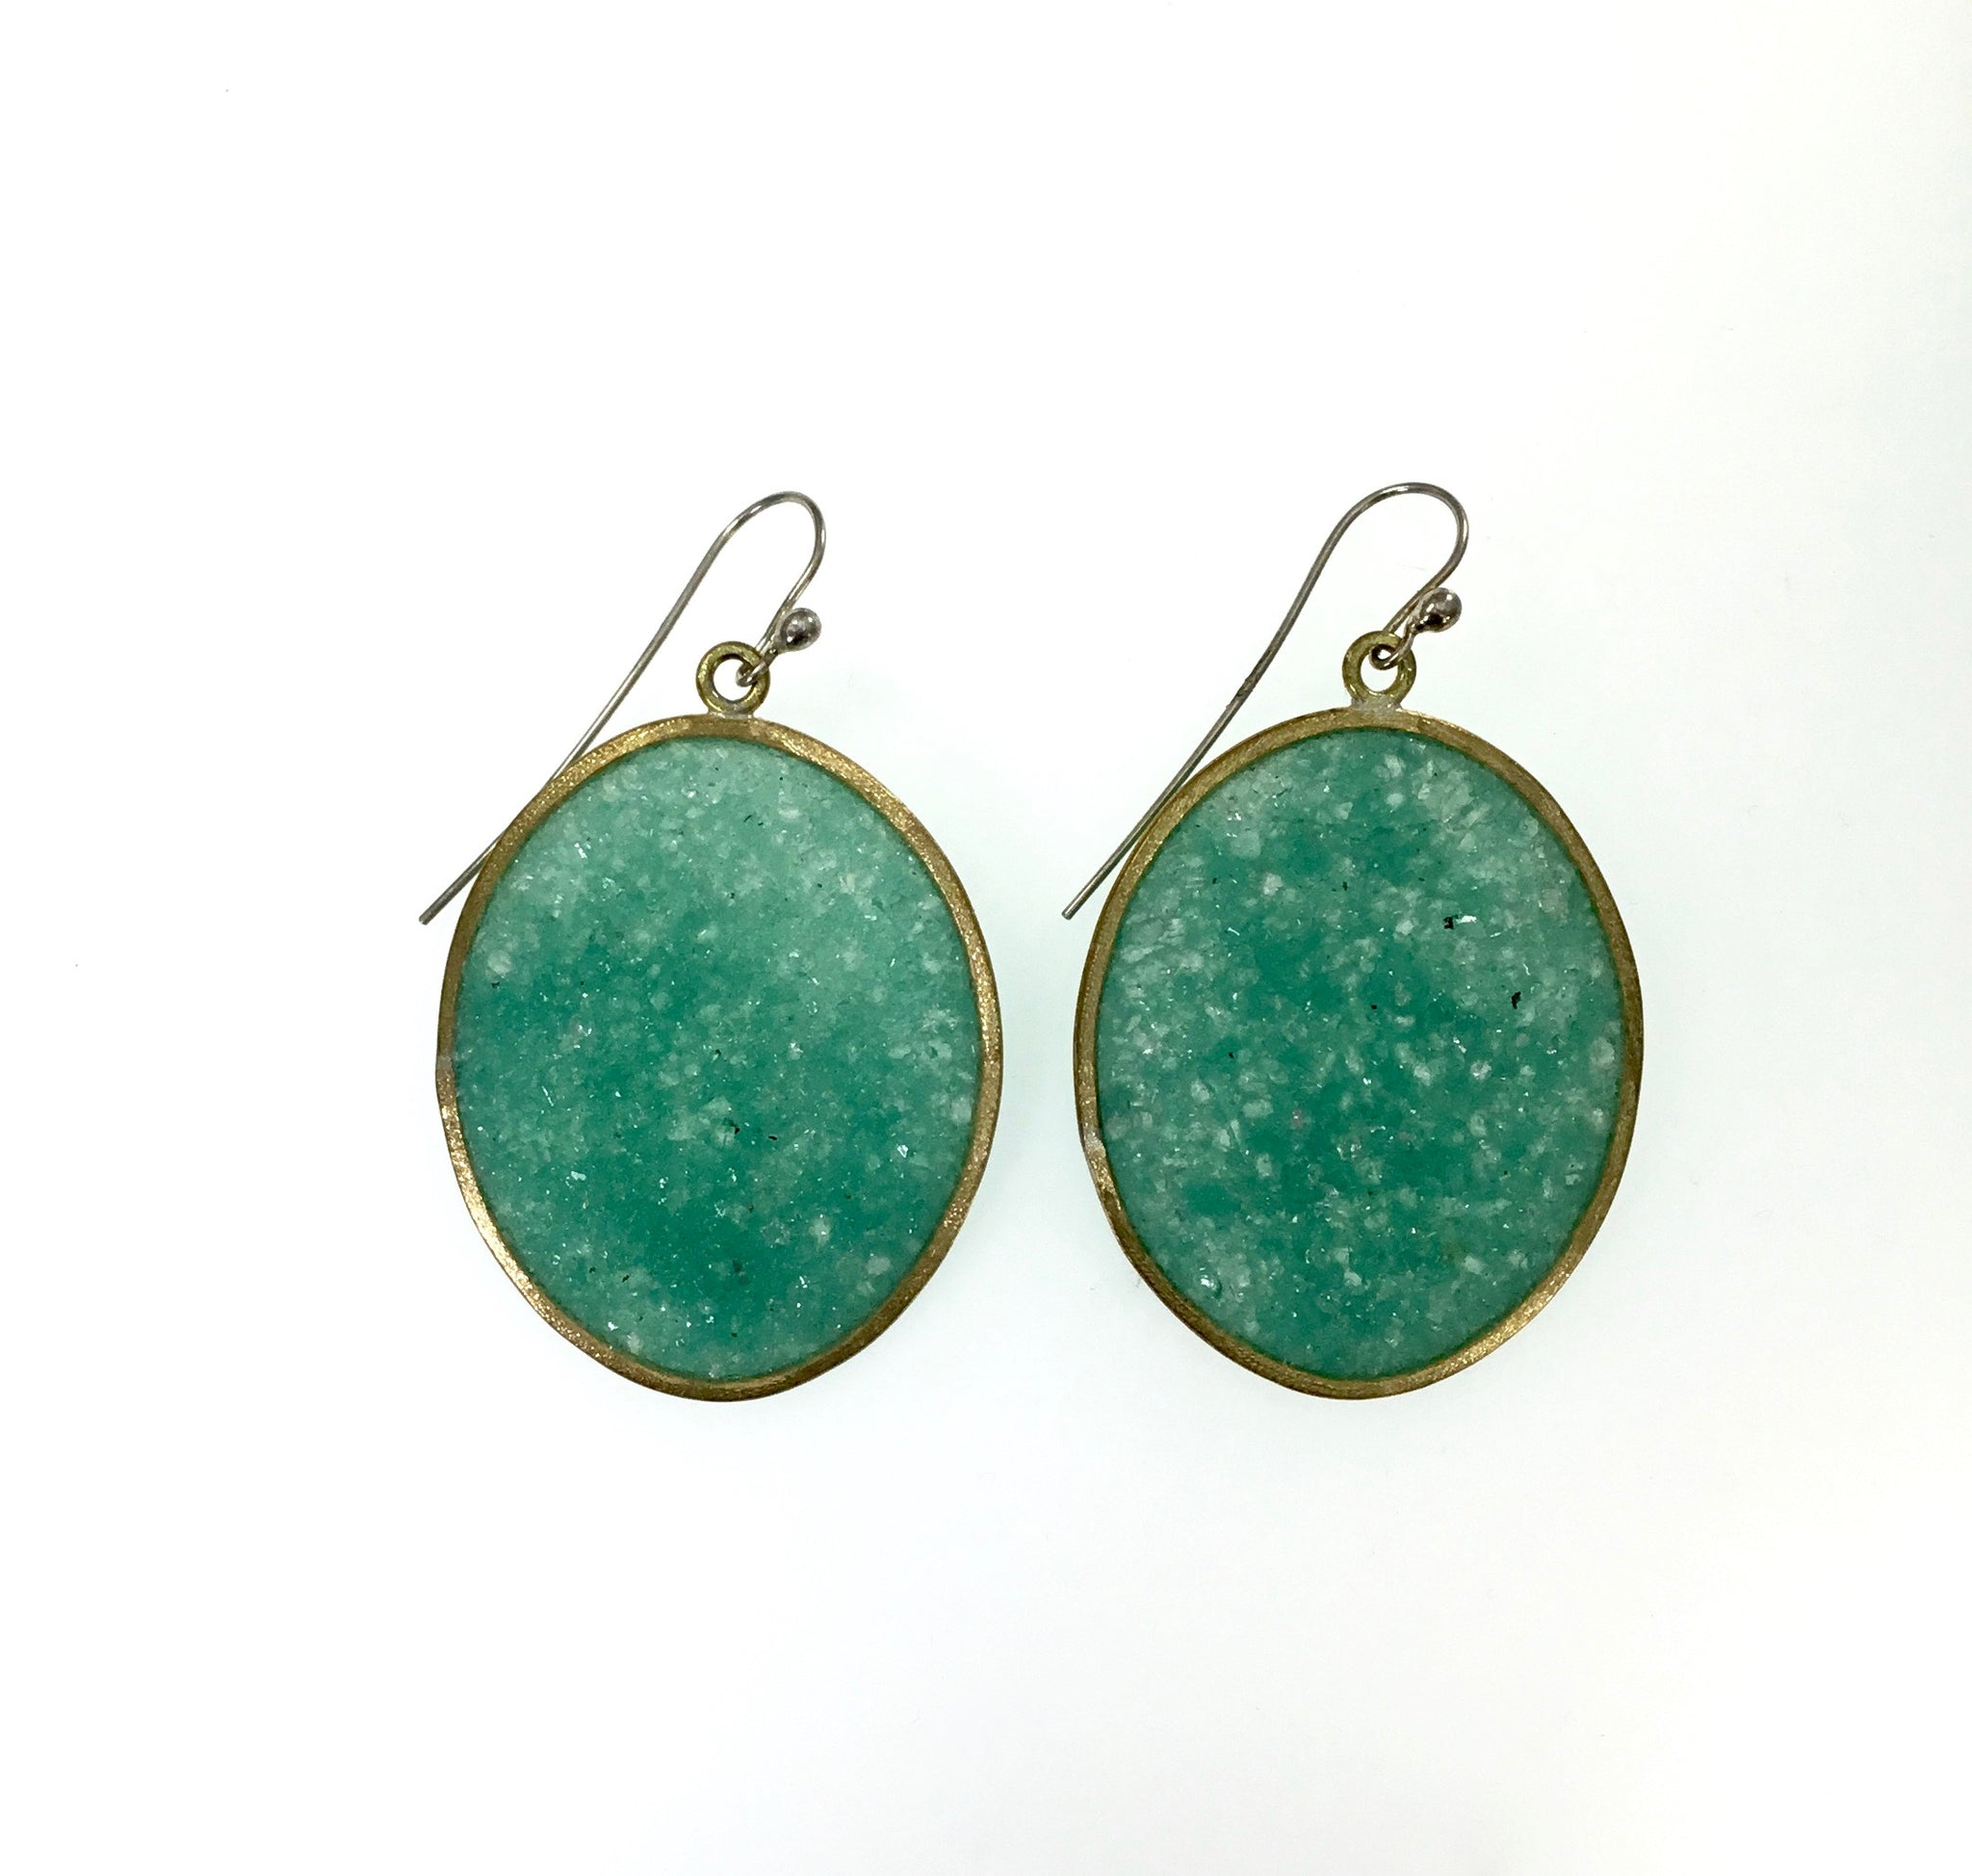 David Urso Large Boulder Earrings in Turquoise